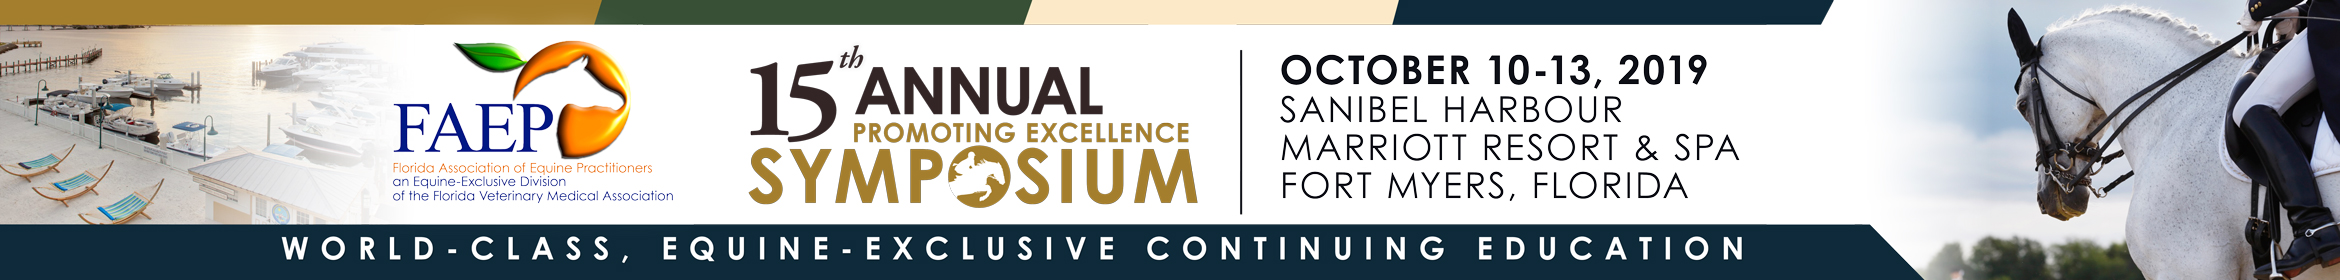 15th Annual FAEP Promoting Excellence Symposium 2019 Main banner